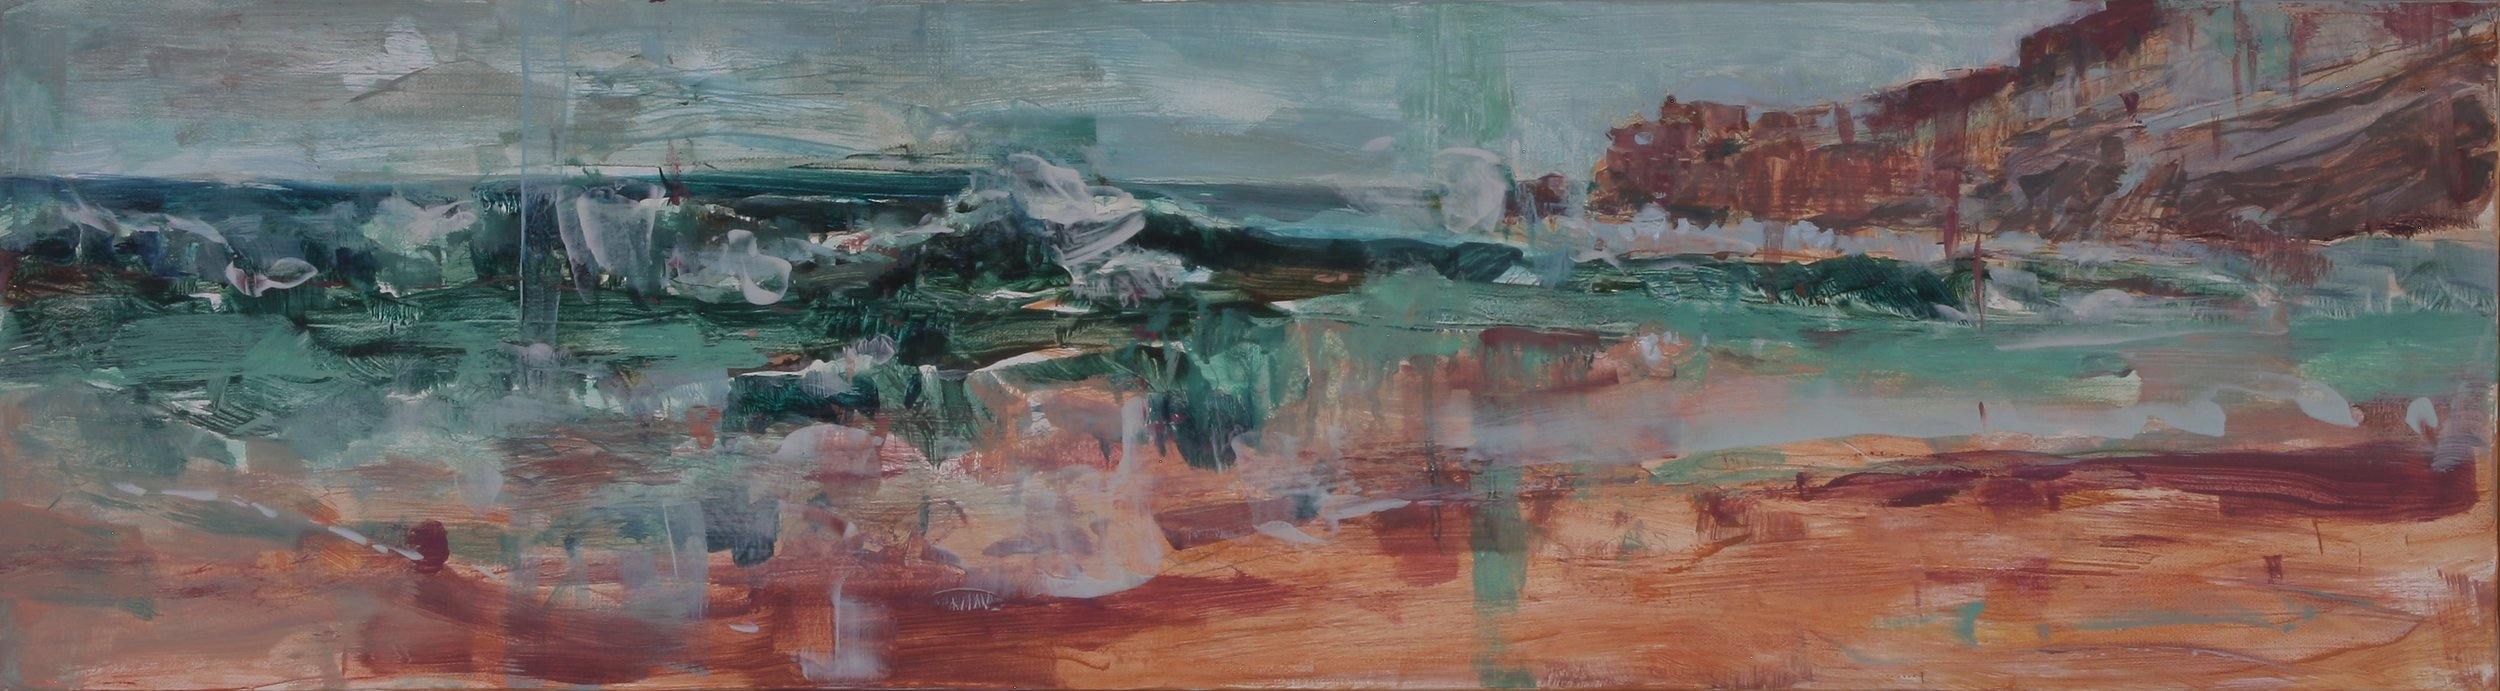 A Distant Wave II 2018 10'' x 36'' oil on canvas